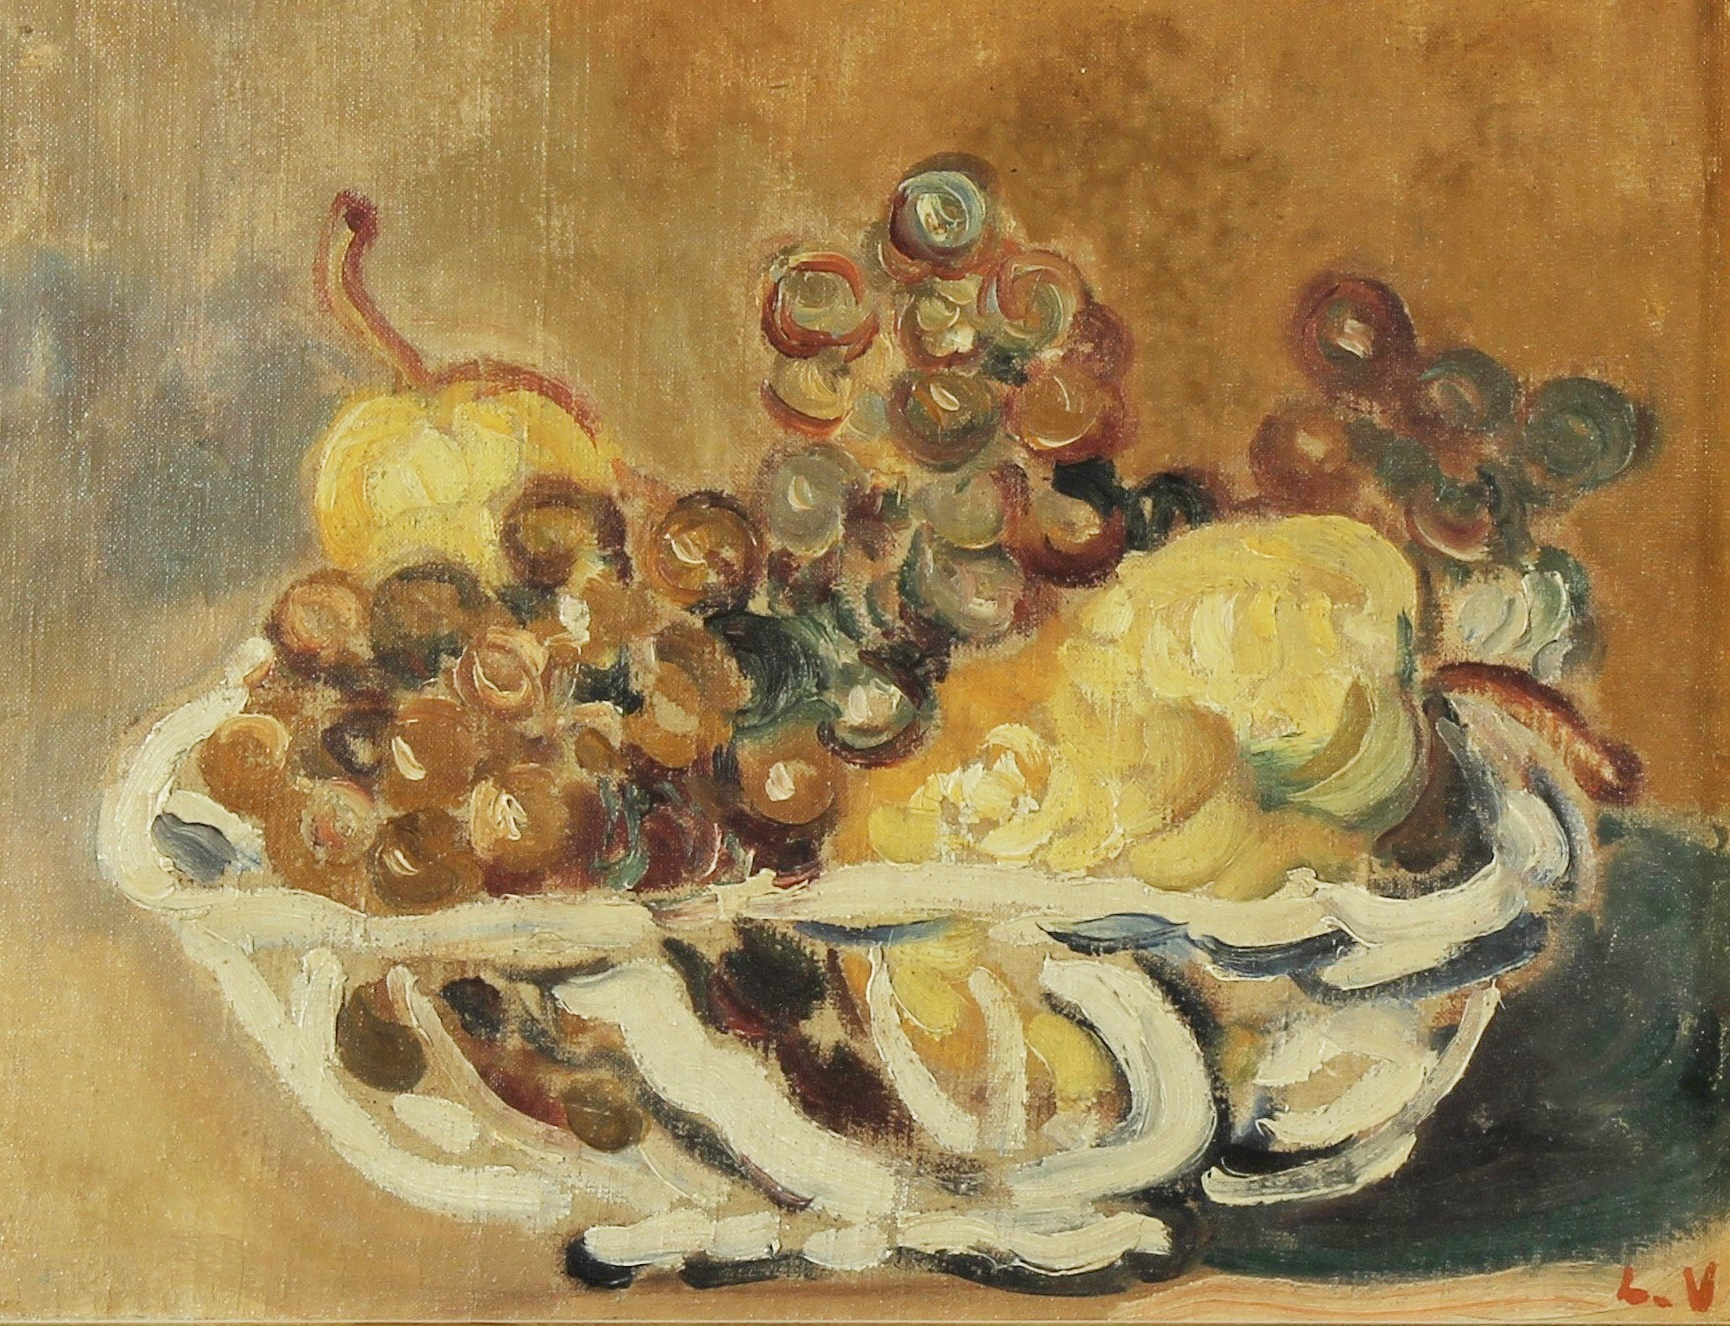 Louis Valtat, French, Still Life With Fruit, Estimate $15-25,000